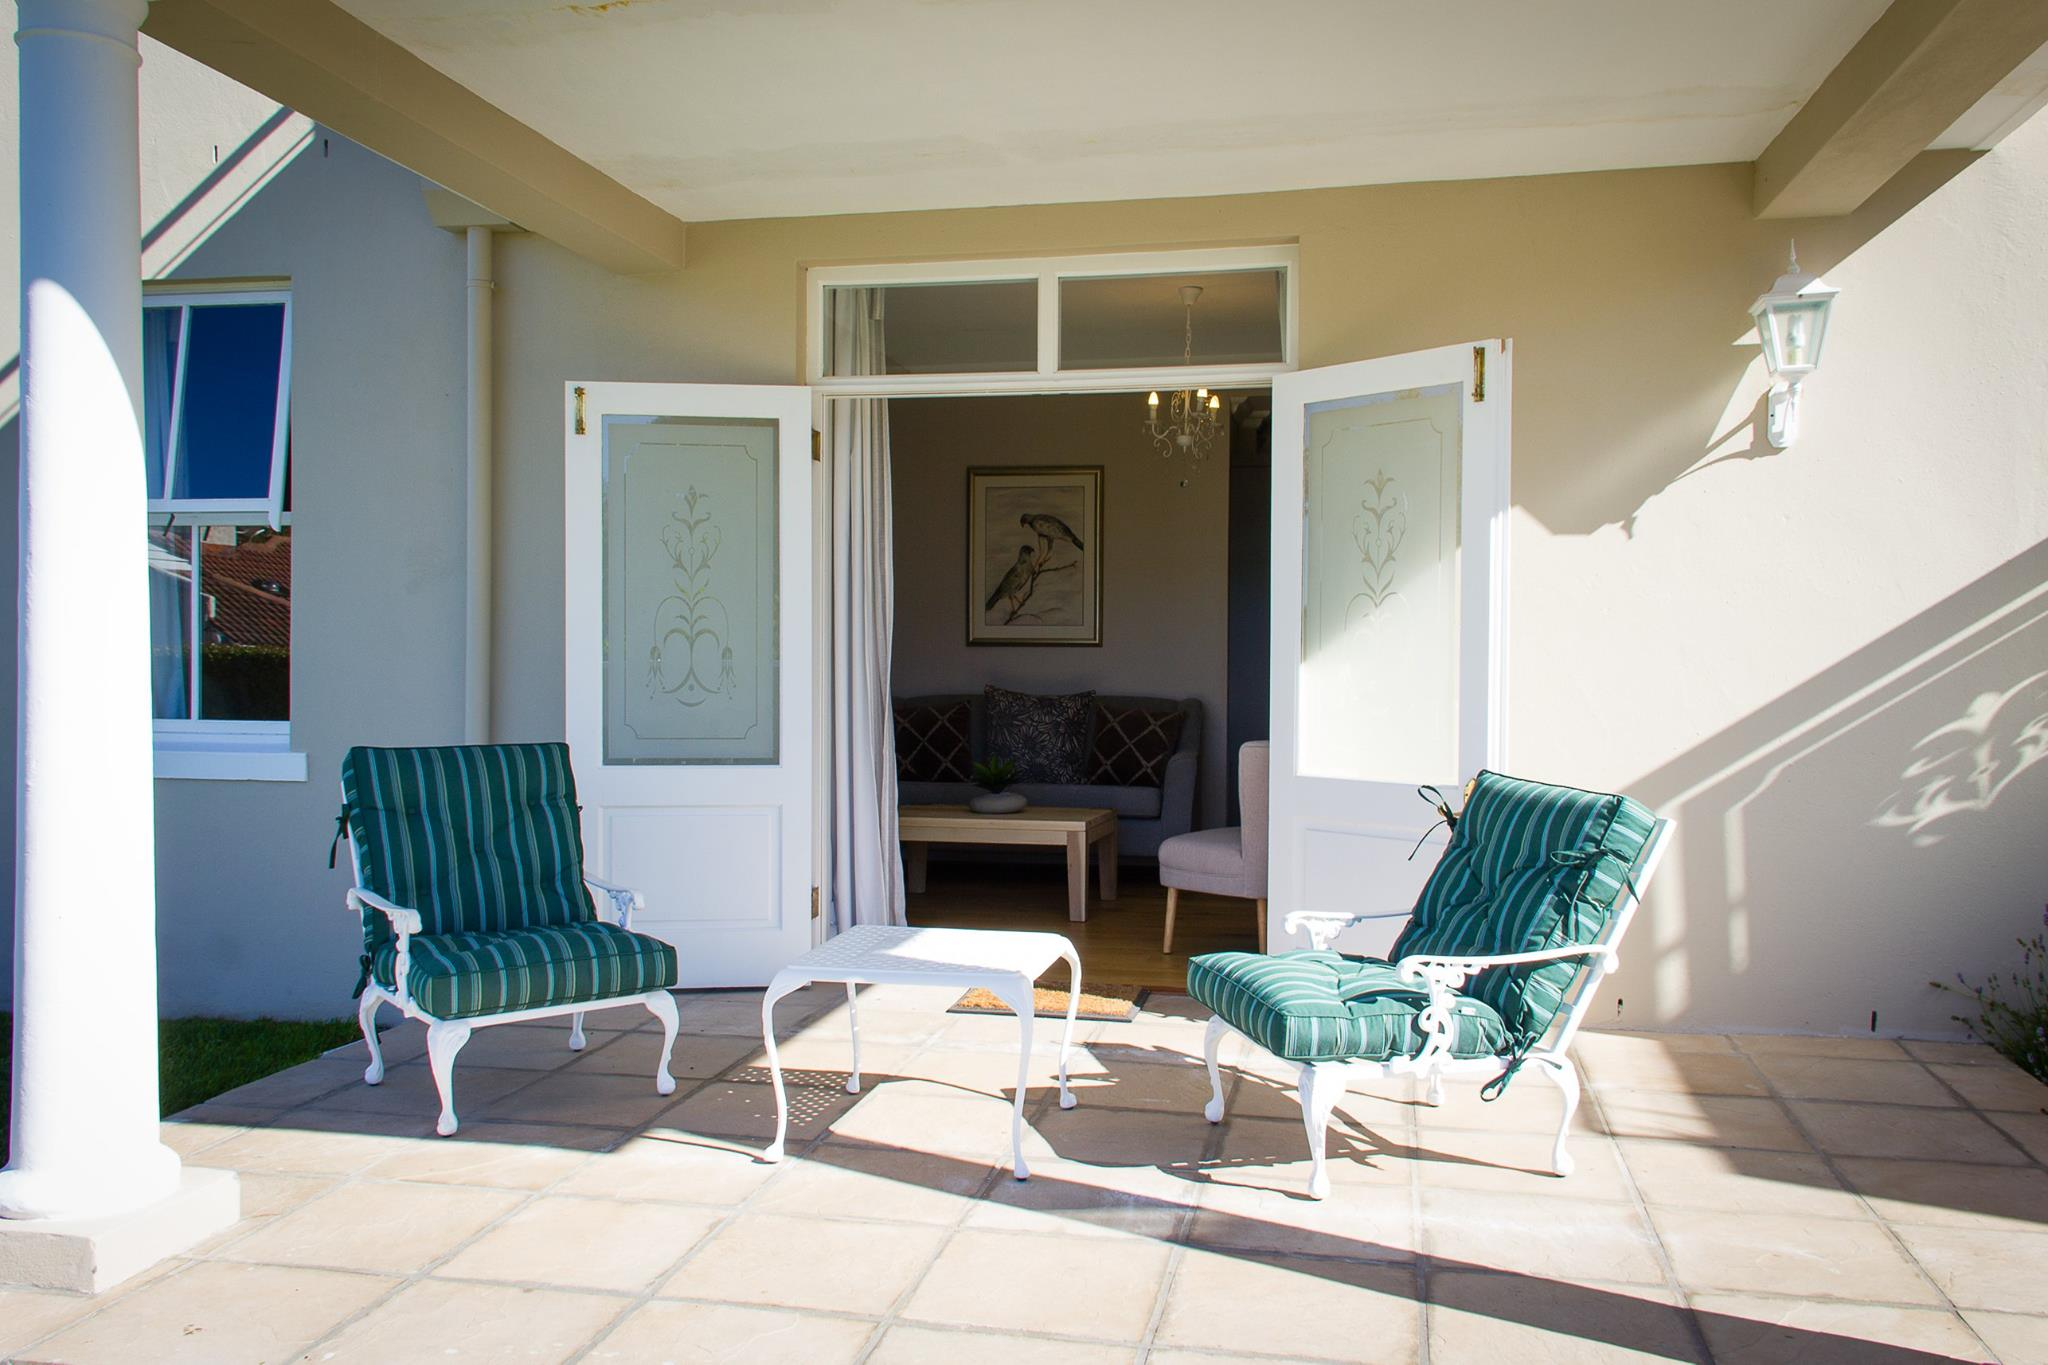 St Tropez 1 seater lounger chairs with St Tropez 50cm side table